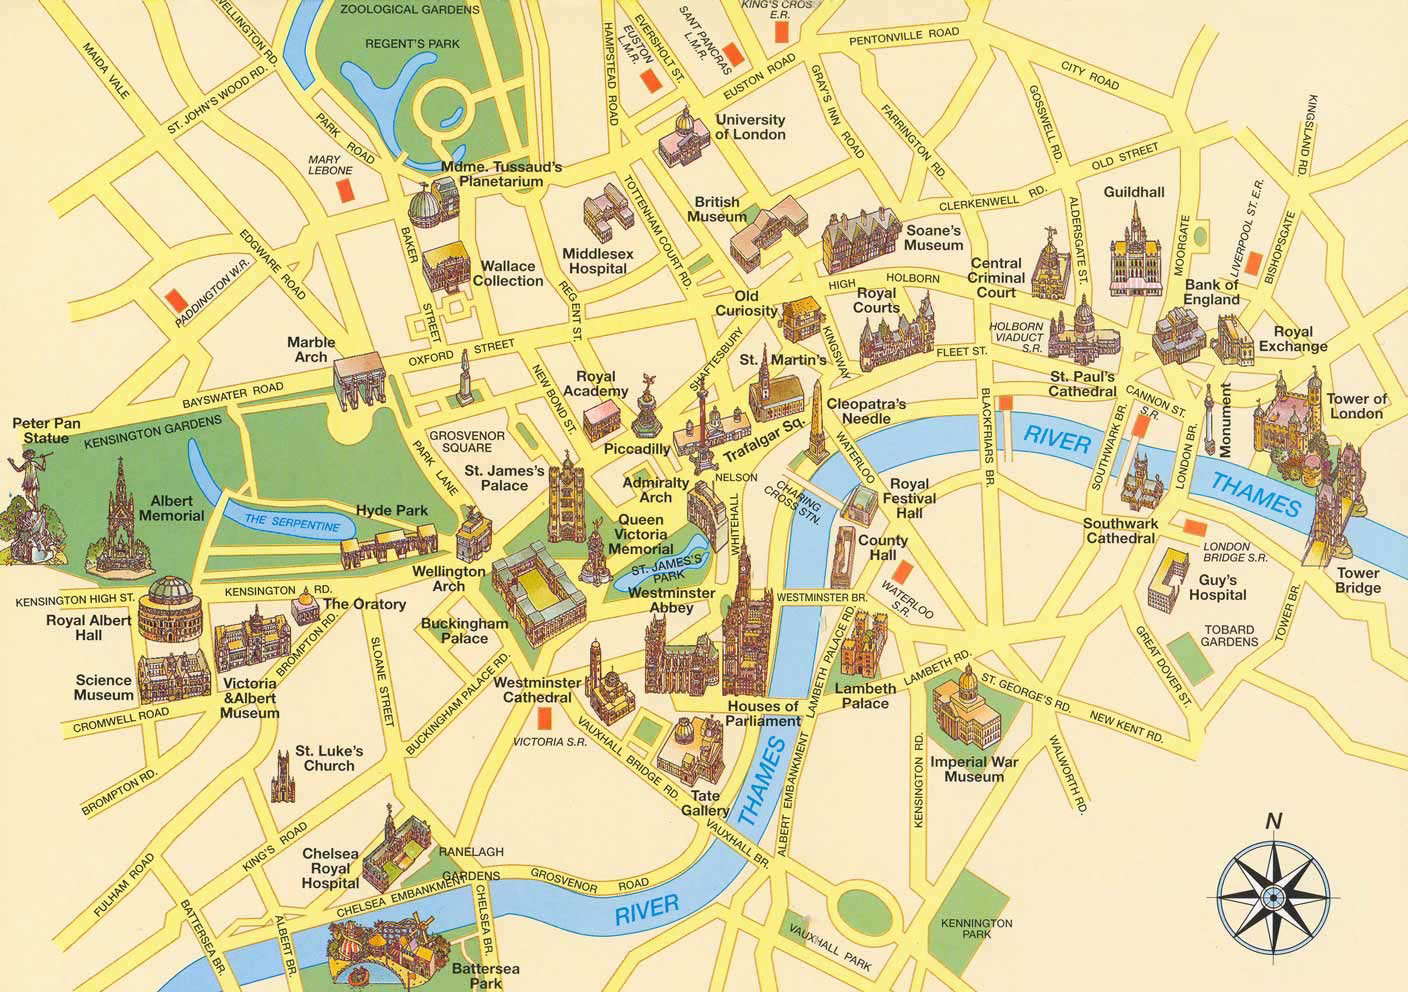 London City Area Map.Large Detailed Tourist Map Of London City Center London City Center